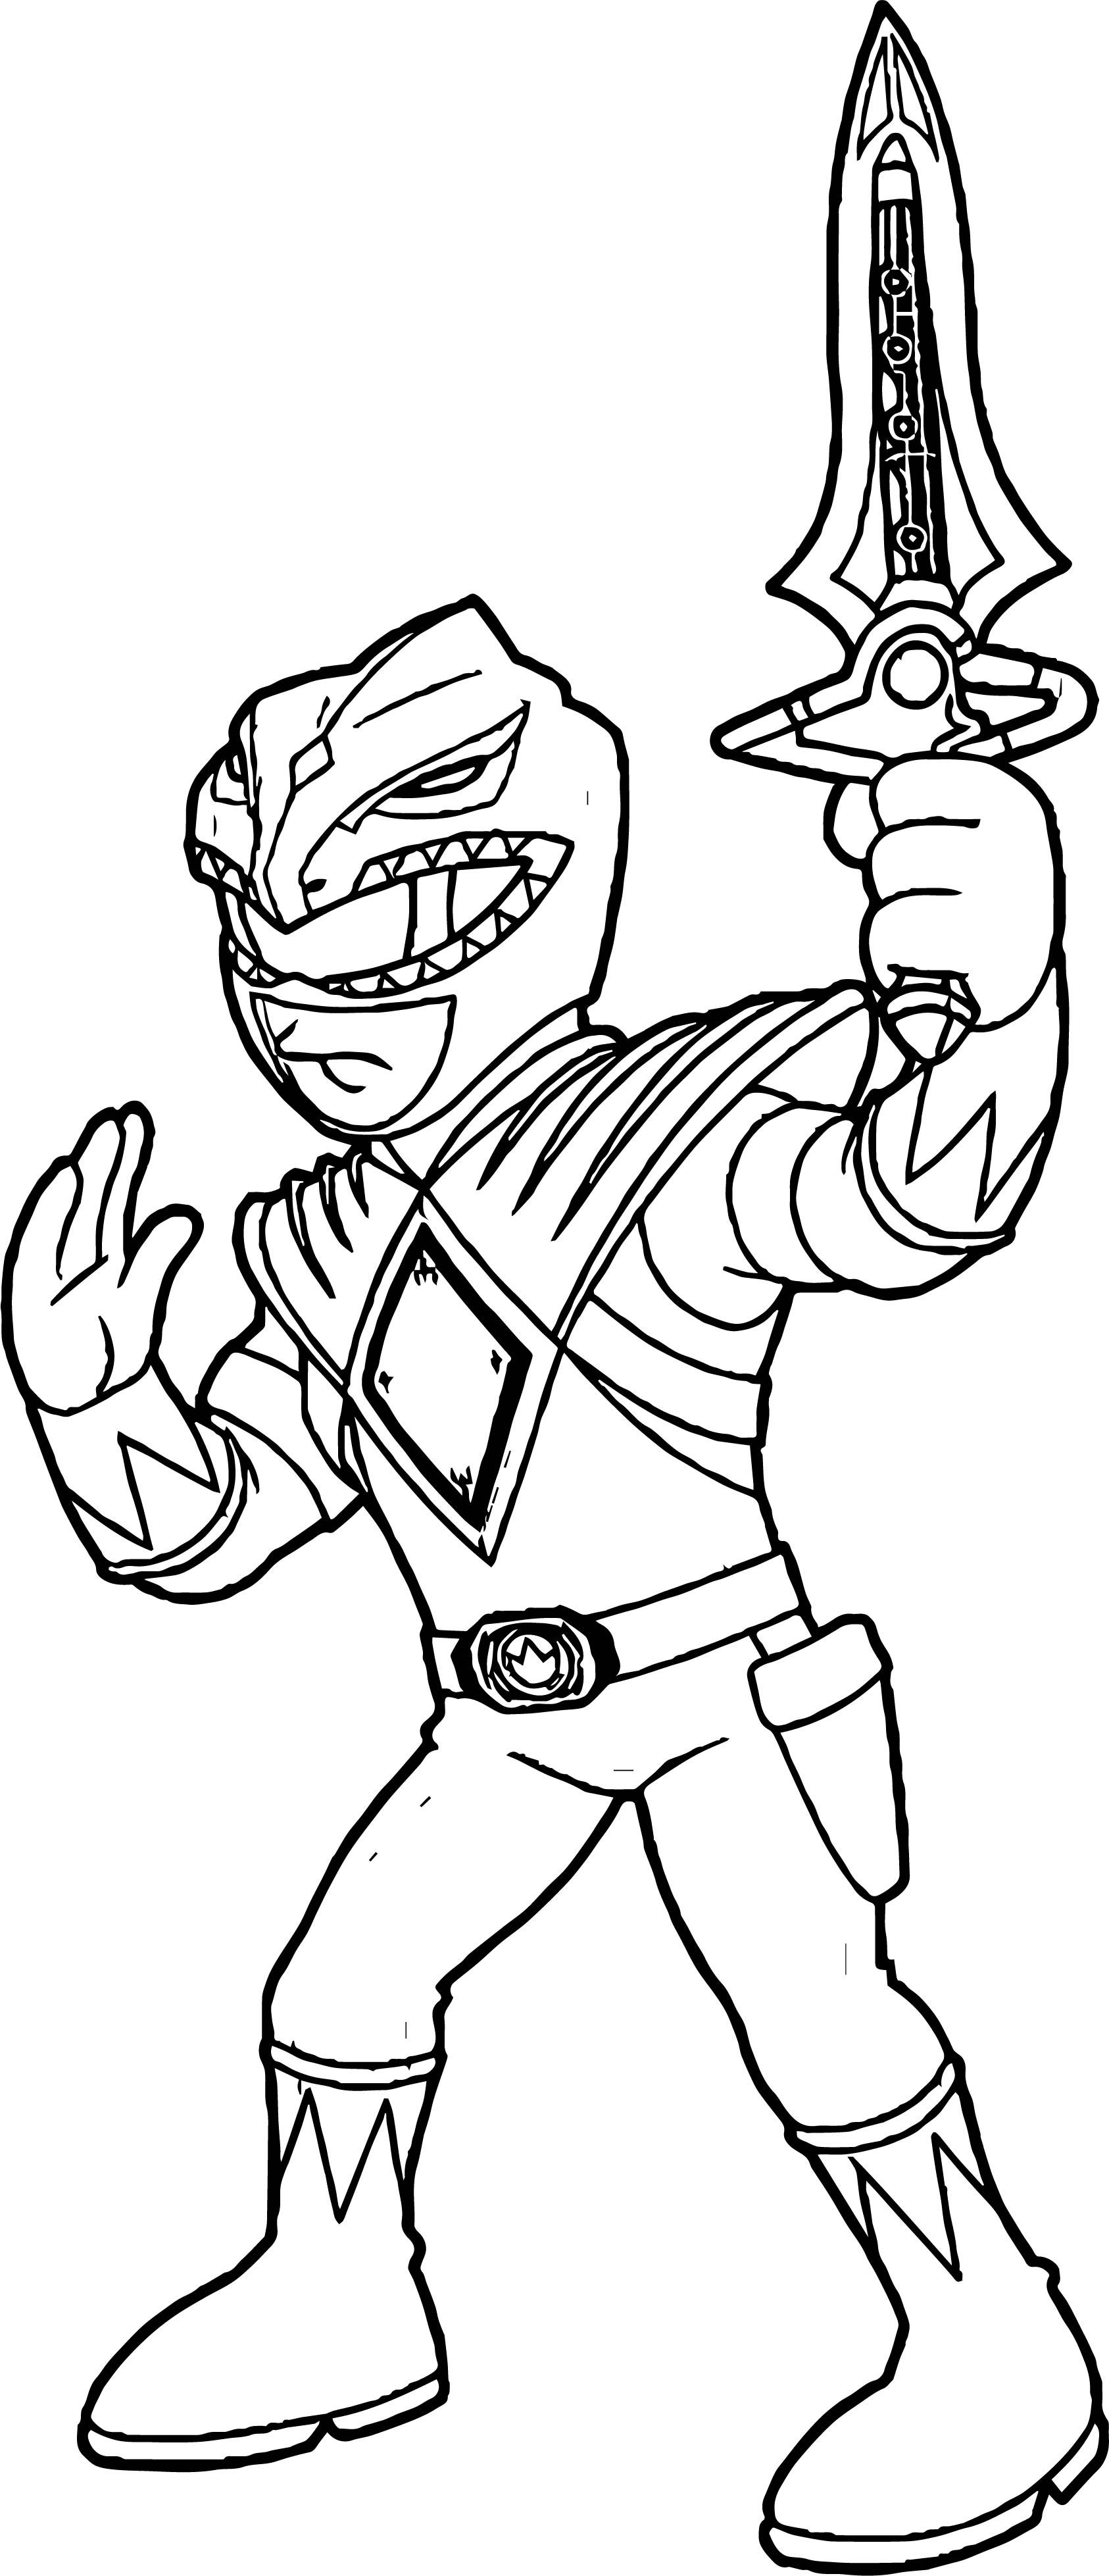 Awesome Power Rangers Green Ranger Coloring Page Power Rangers Coloring Pages Dinosaur Coloring Pages Coloring Pages